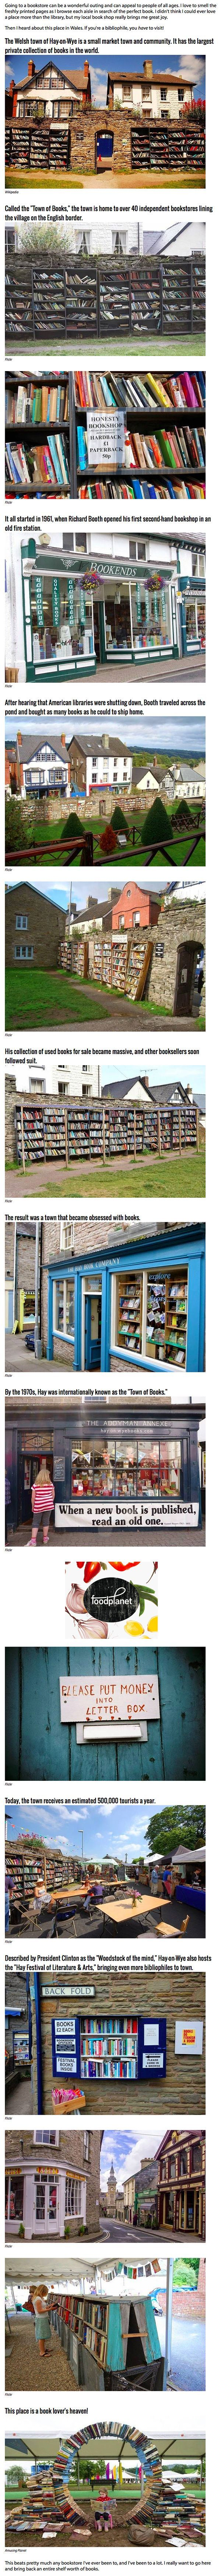 """""""Town of Books"""" - Hay-on-Wye"""